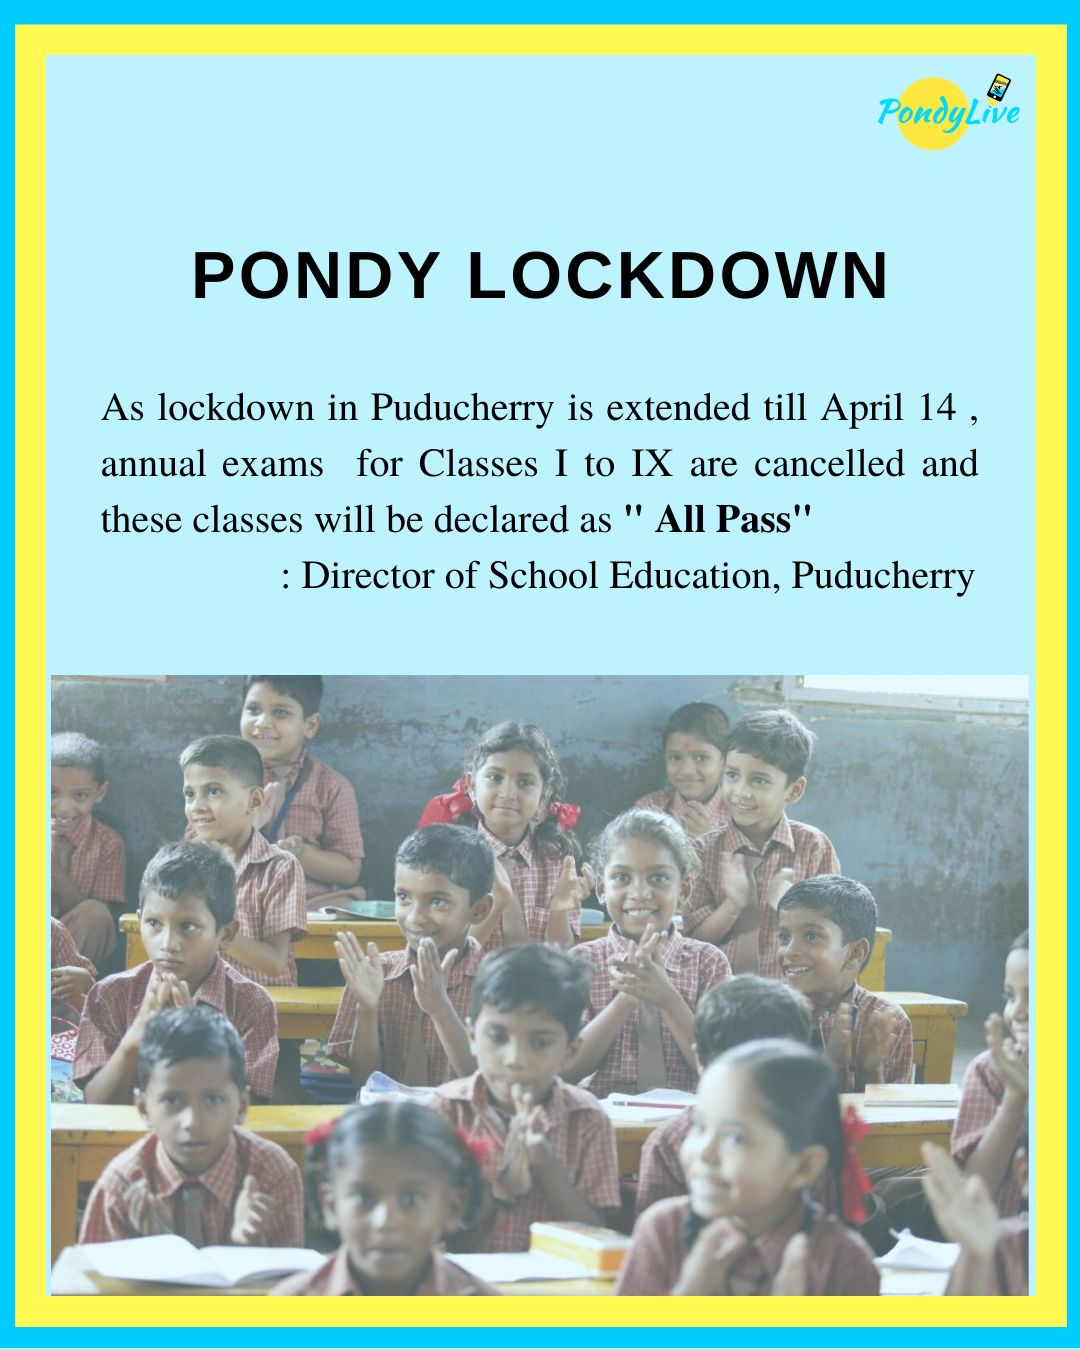 all pass for school students in Puducherry from Class I to IX due to lockdown as preventive measure for cover-19 coronavirus